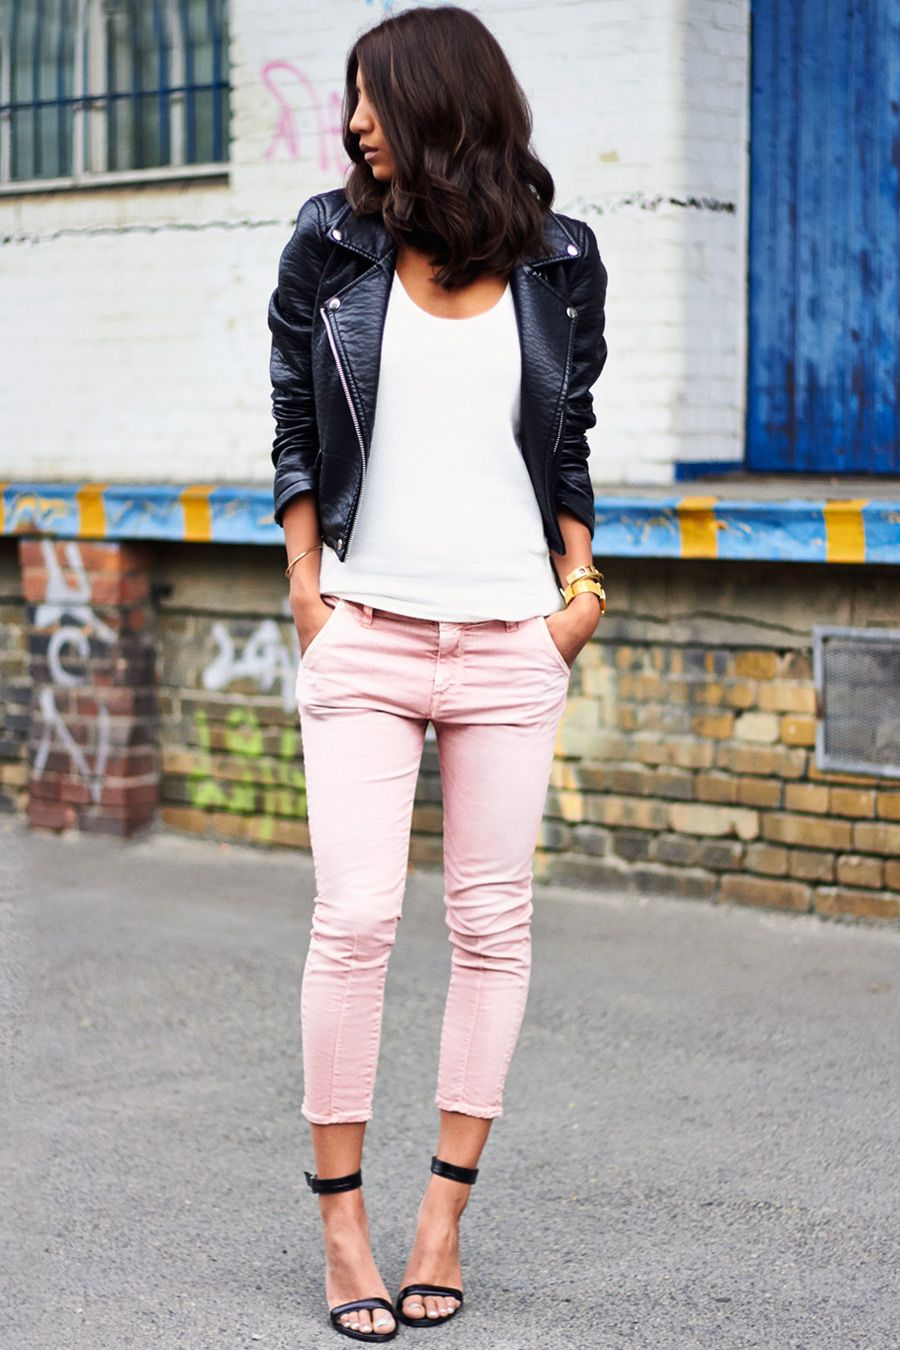 How to pastel wear colored jeans foto